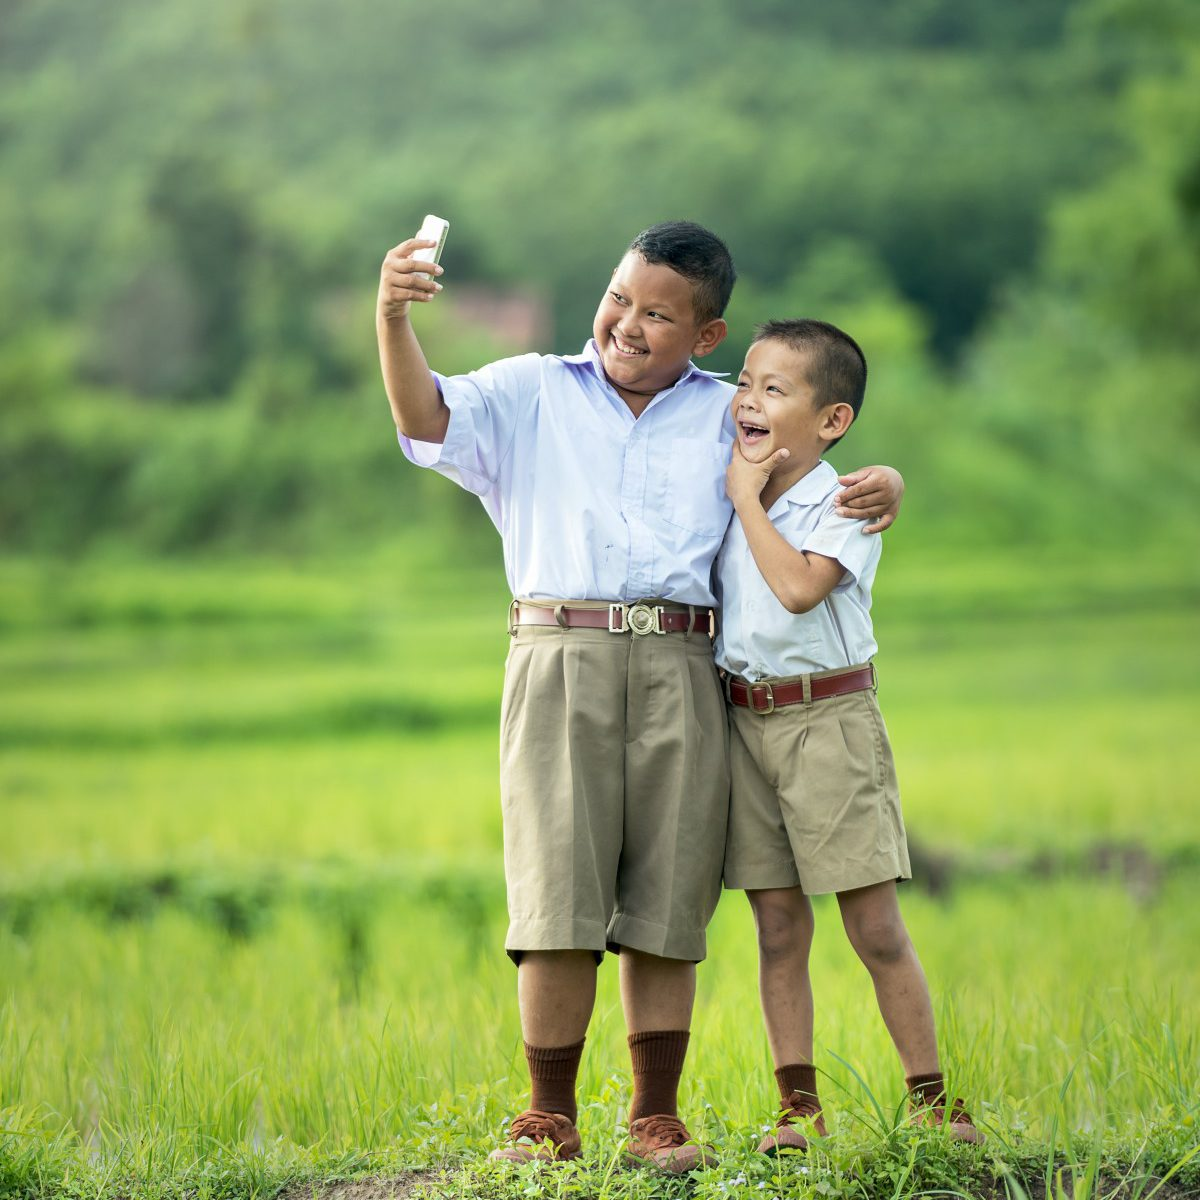 Children taking selfie